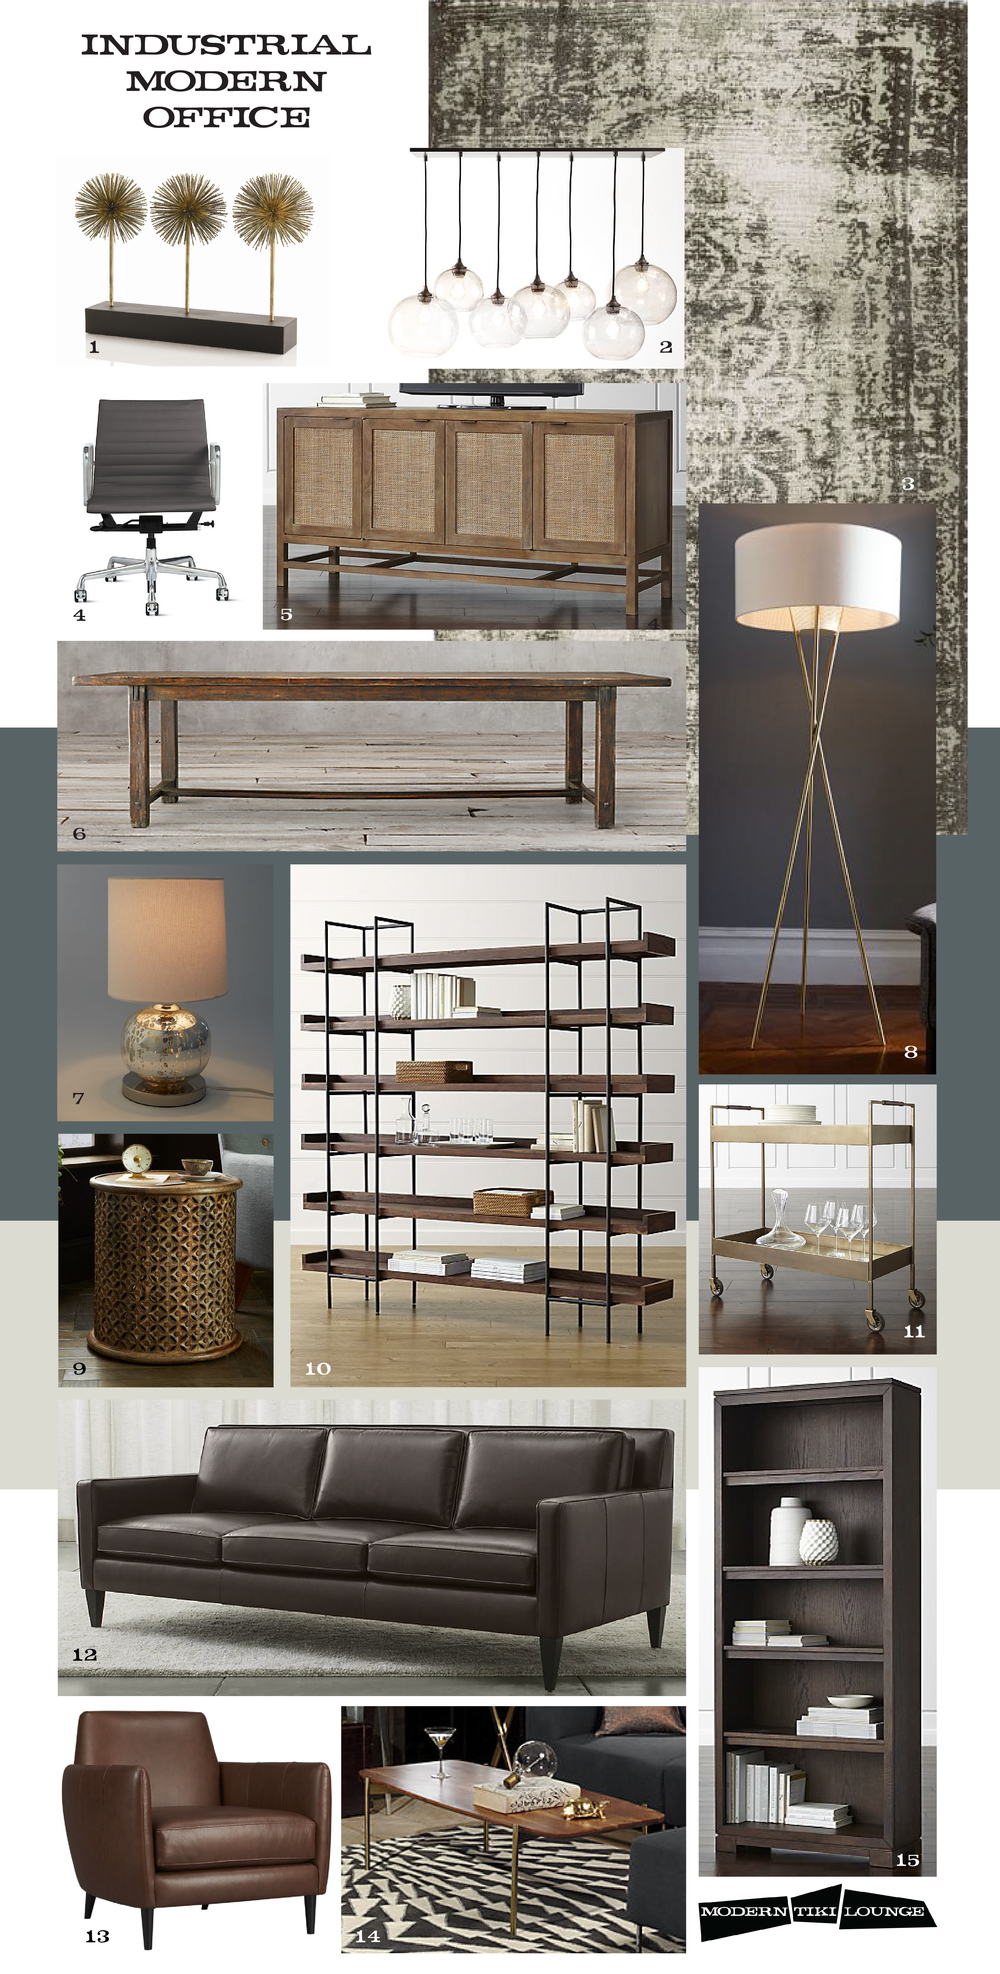 1. ATLANTIS IRON SCULPTURE 2. GLASS ORB CHANDELIER 3. DISTRESSED ARABESQUE WOOL RUG 4. EAMES ALUMINUM GROUP MANAGEMENT CHAIR 5. BLAKE MEDIA CONSOLE 6. 17th c. spanish monastery dining table 7. mini abacus table lamp 8. mid-century tripod floor lamp 9. carved wood side table 10. beckett 6-high shelf 11. libations bar cart 12. rochelle leather sofa 13. parlour leather chair 14. adam coffee table 15. wells bookcase